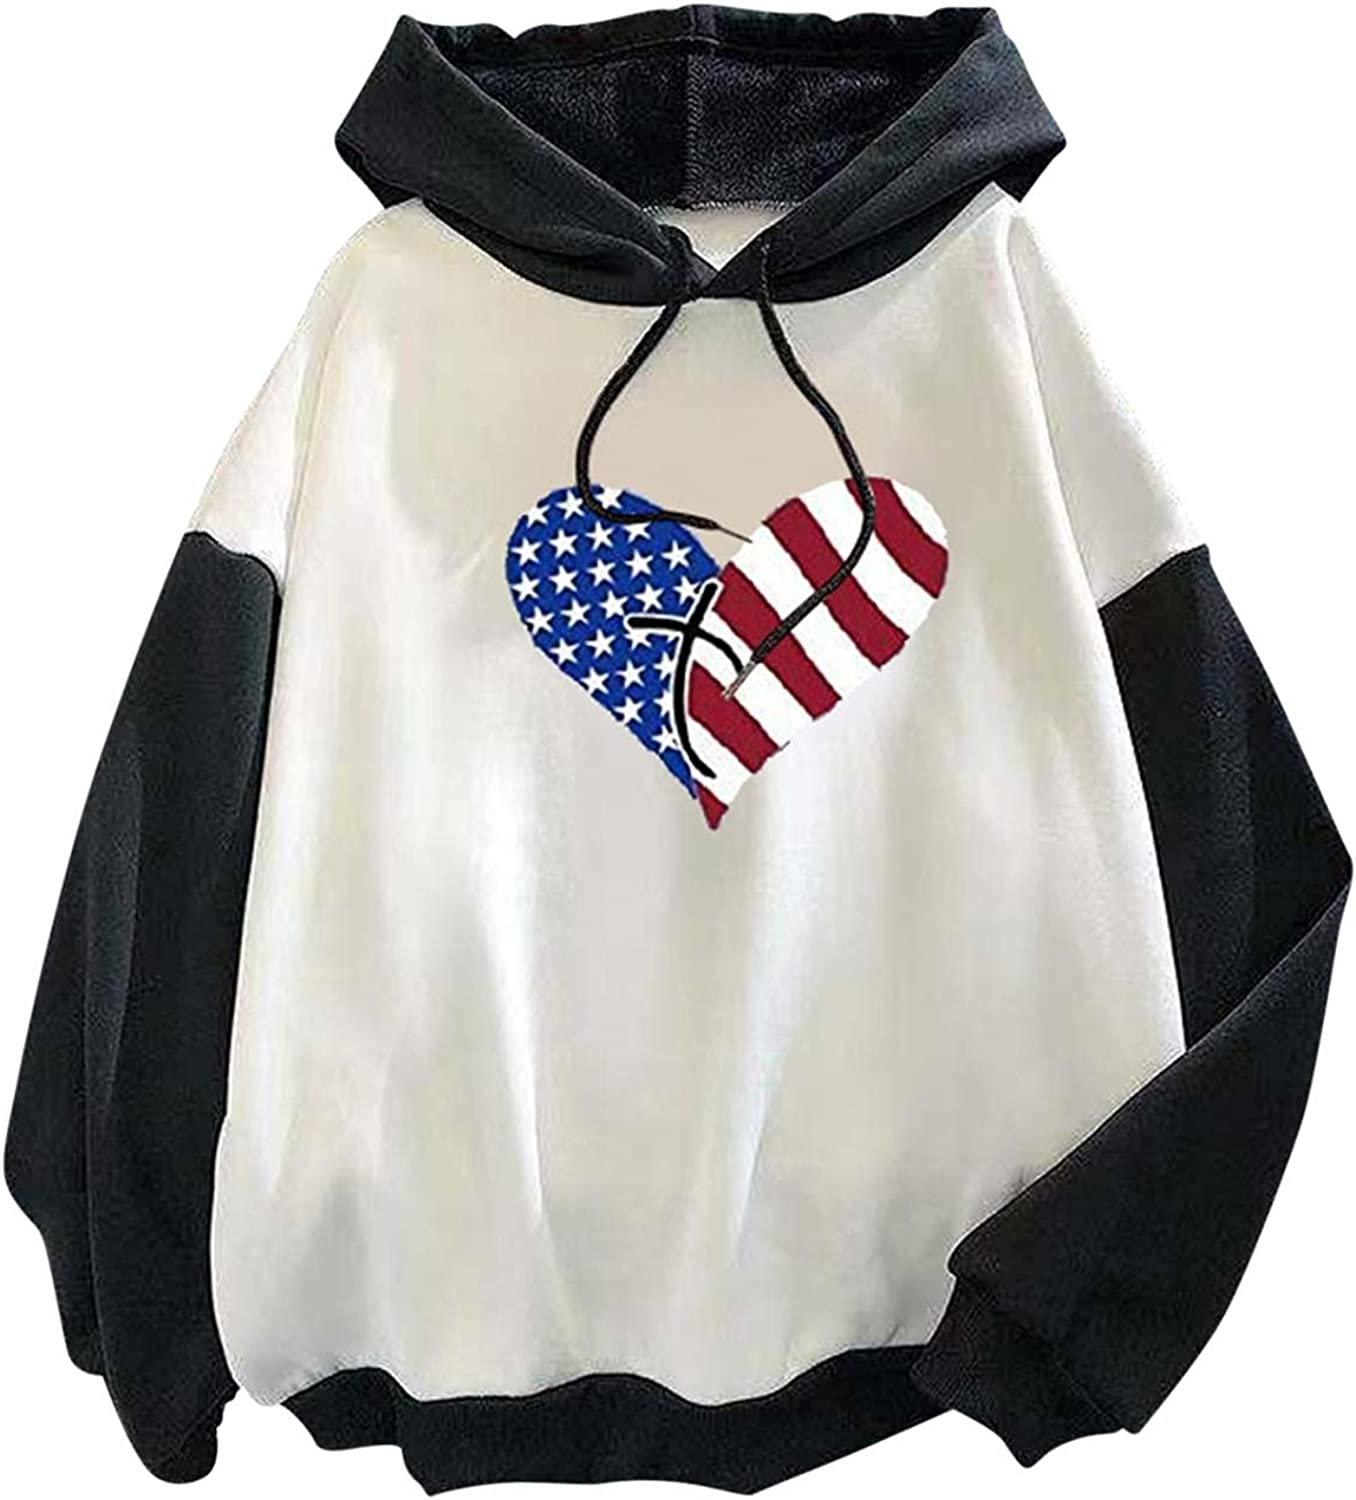 Qunkii Women's Casual Hoodies Patchwork Long Sleeve Sweatshirts Drawstring Pullover Cute Heart Graphic Tunic Tops